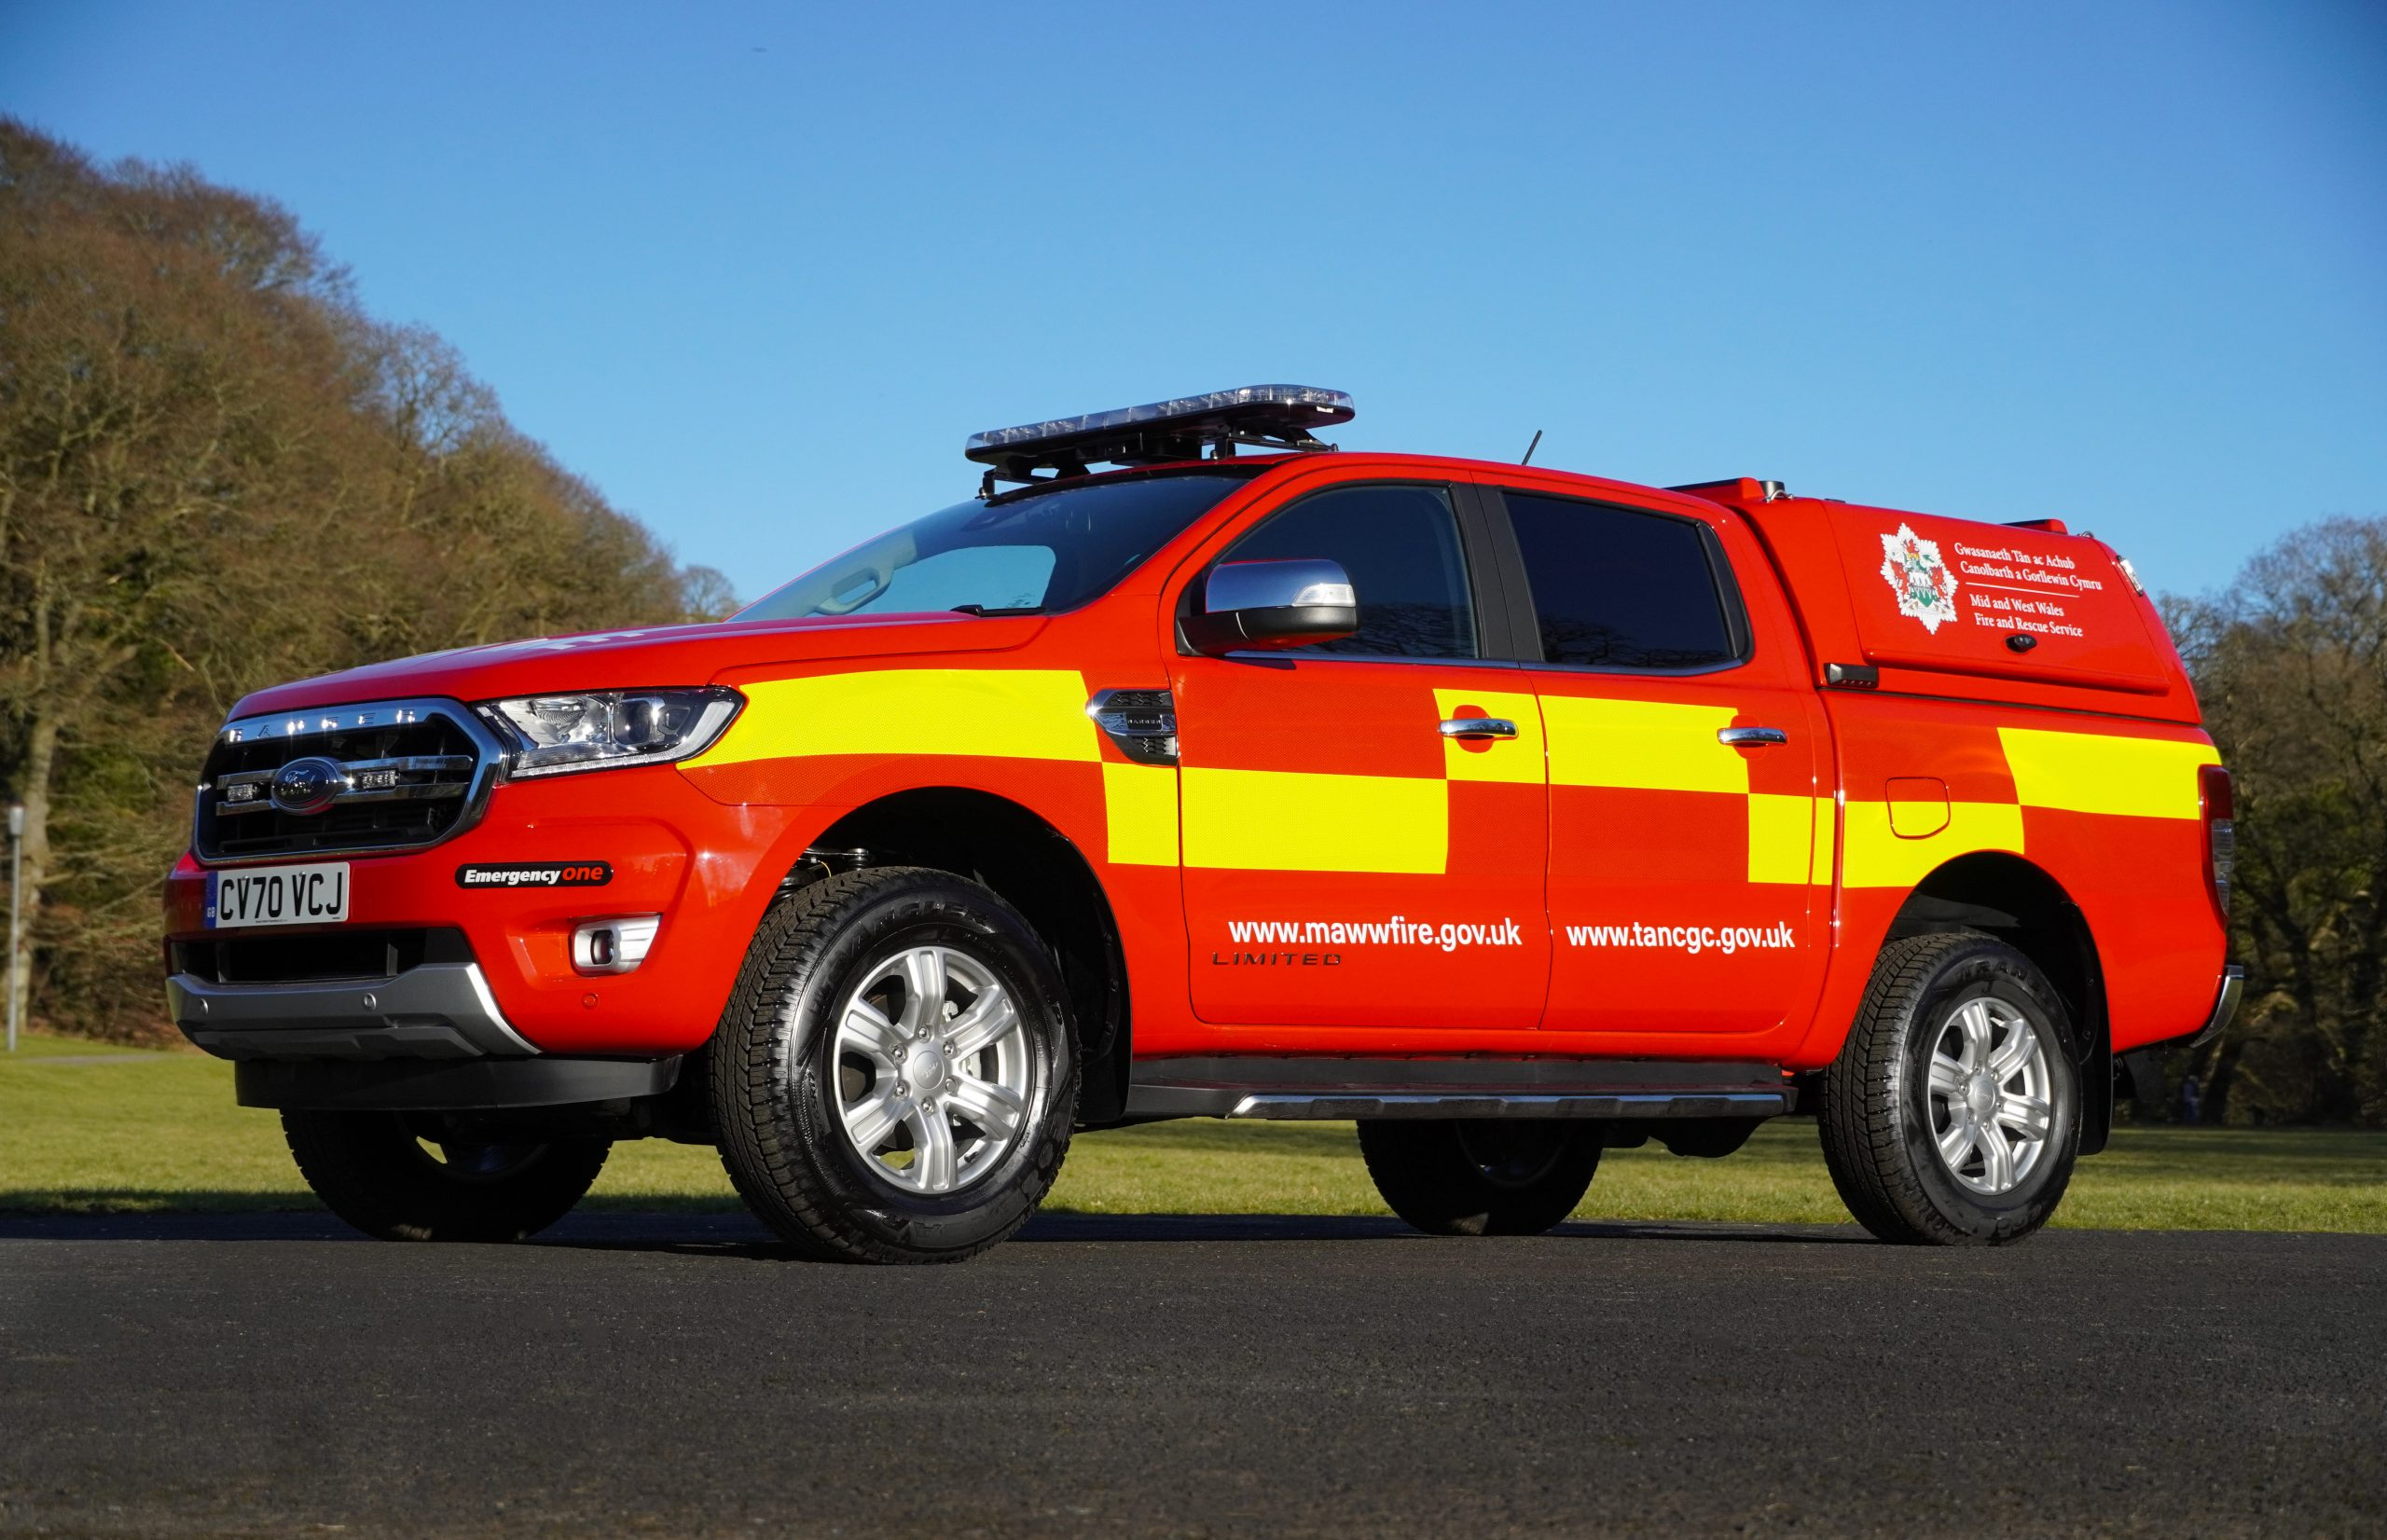 Emergency One fire and rescue vehicles, manufacturing, ford ranger , rapid response